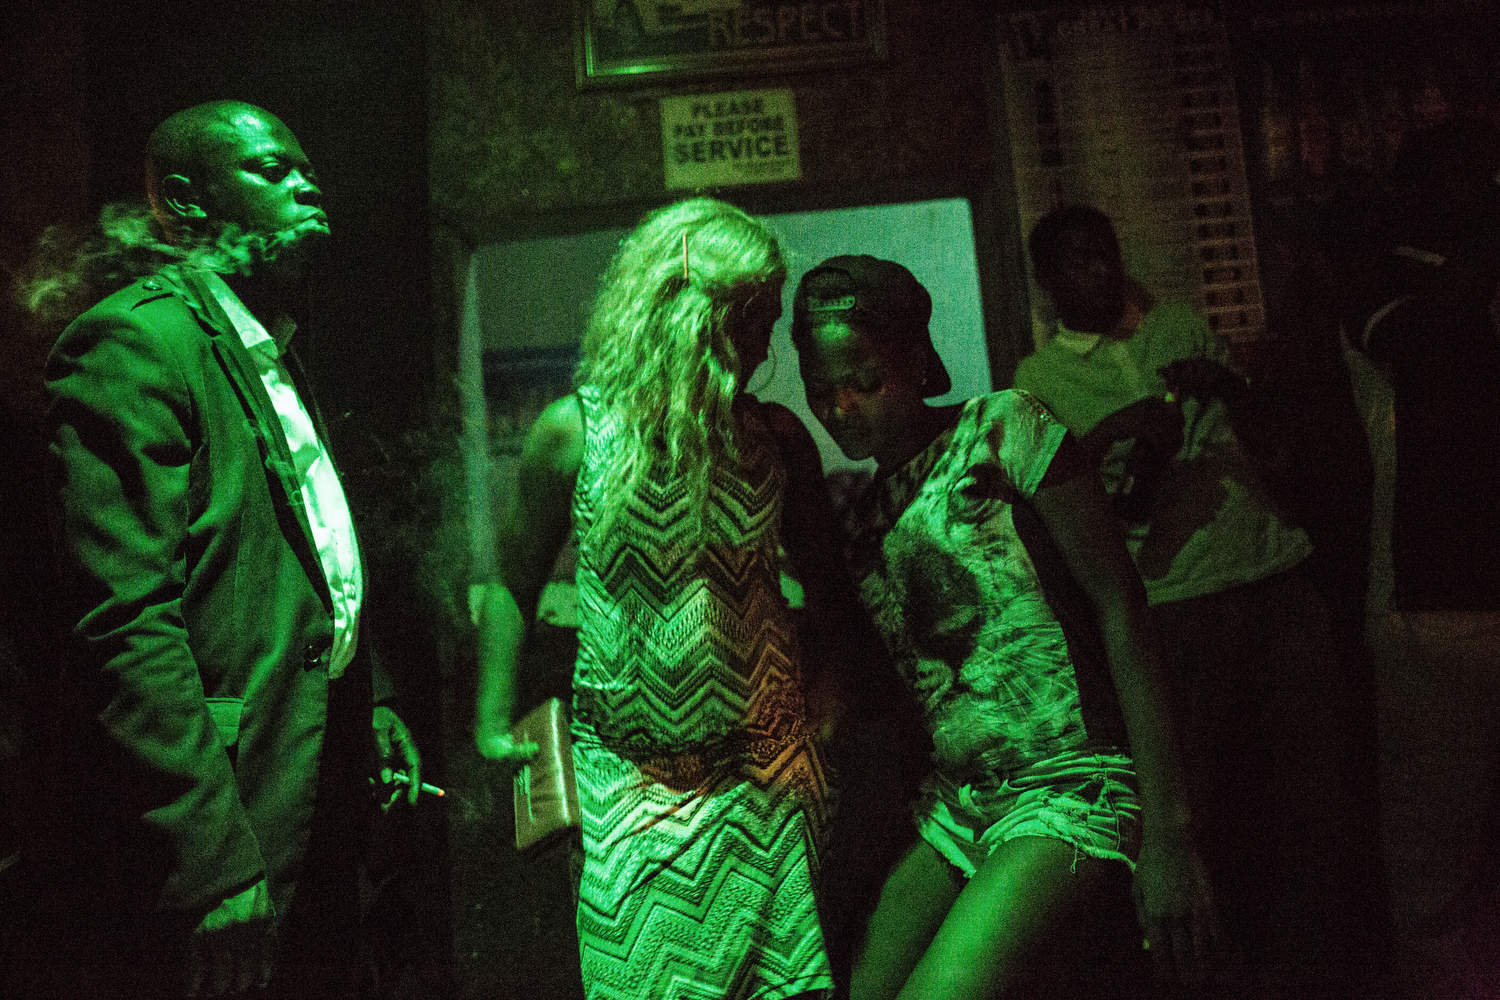 Sex workers dance at a bar in Obalende, a rough neighborhood in Lagos, Nigeria.